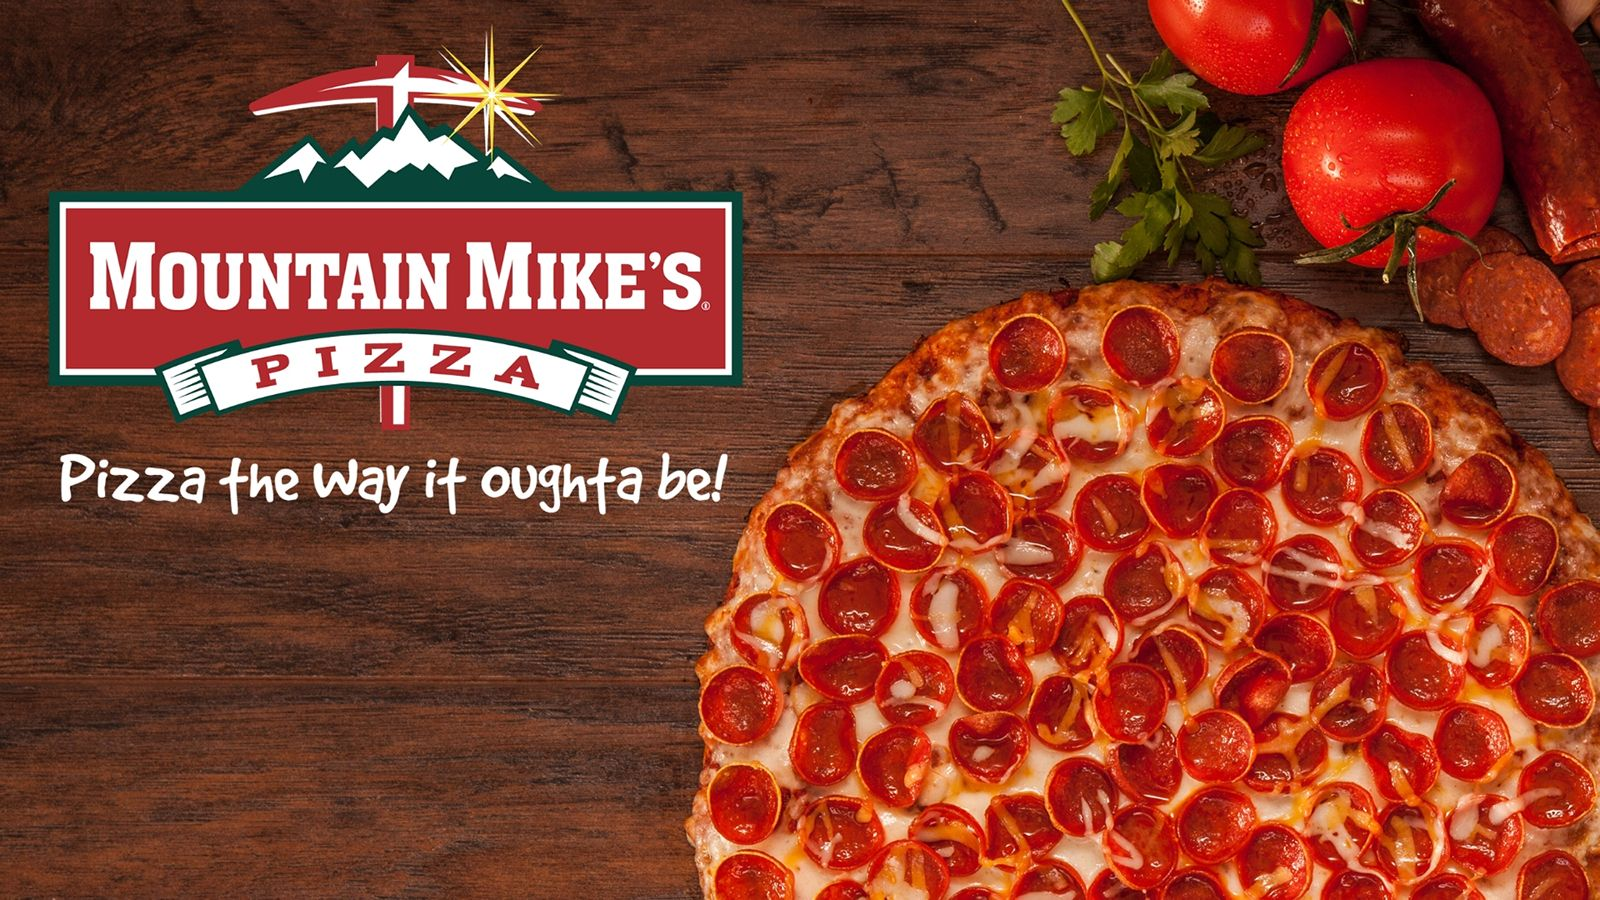 Mountain Mike's Pizza Coming Soon to Cloverdale